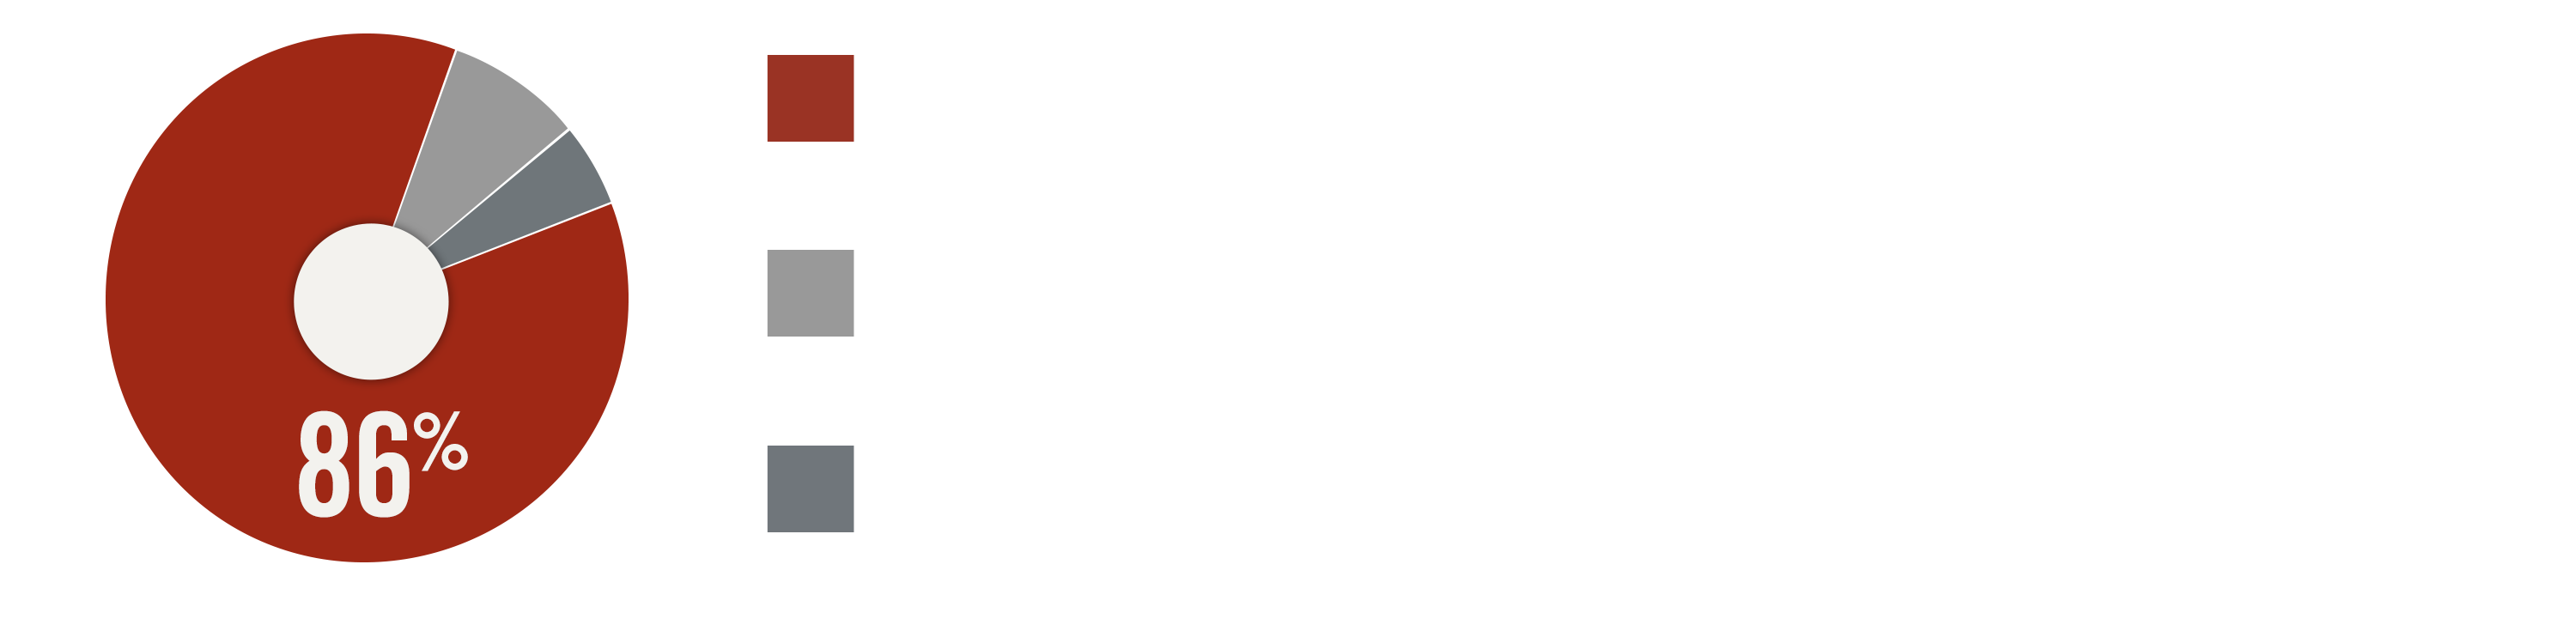 Finances: 86% Program Services, 8% Fundraising, 5% Management & General